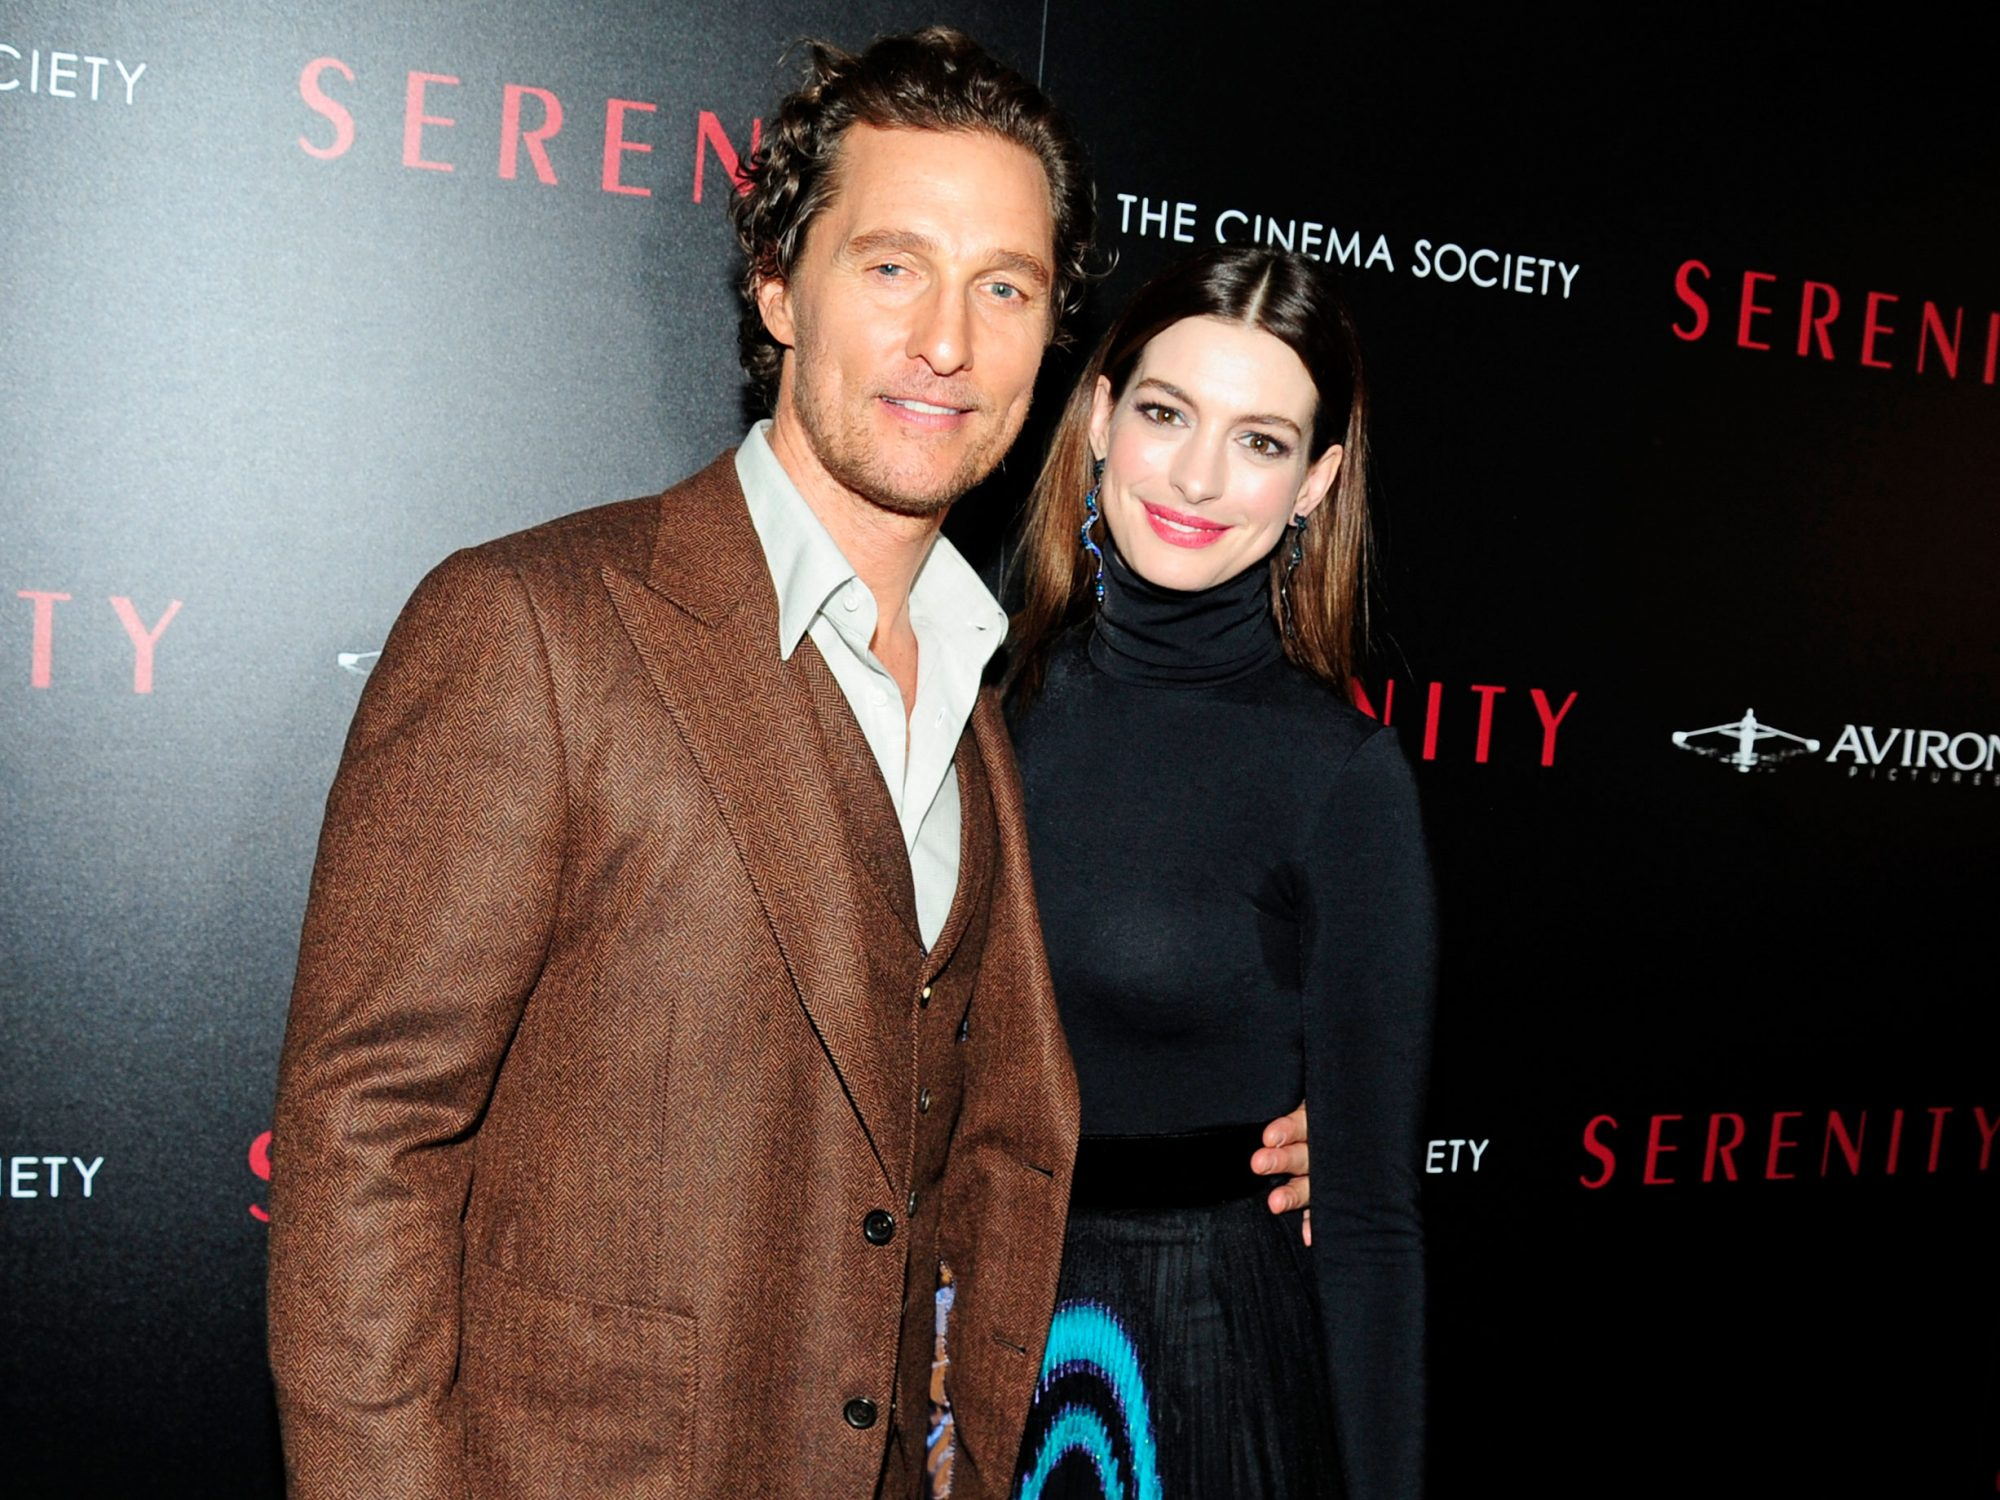 Anne Hathaway on Exactly What it's Like to Work With Matthew McConaughey